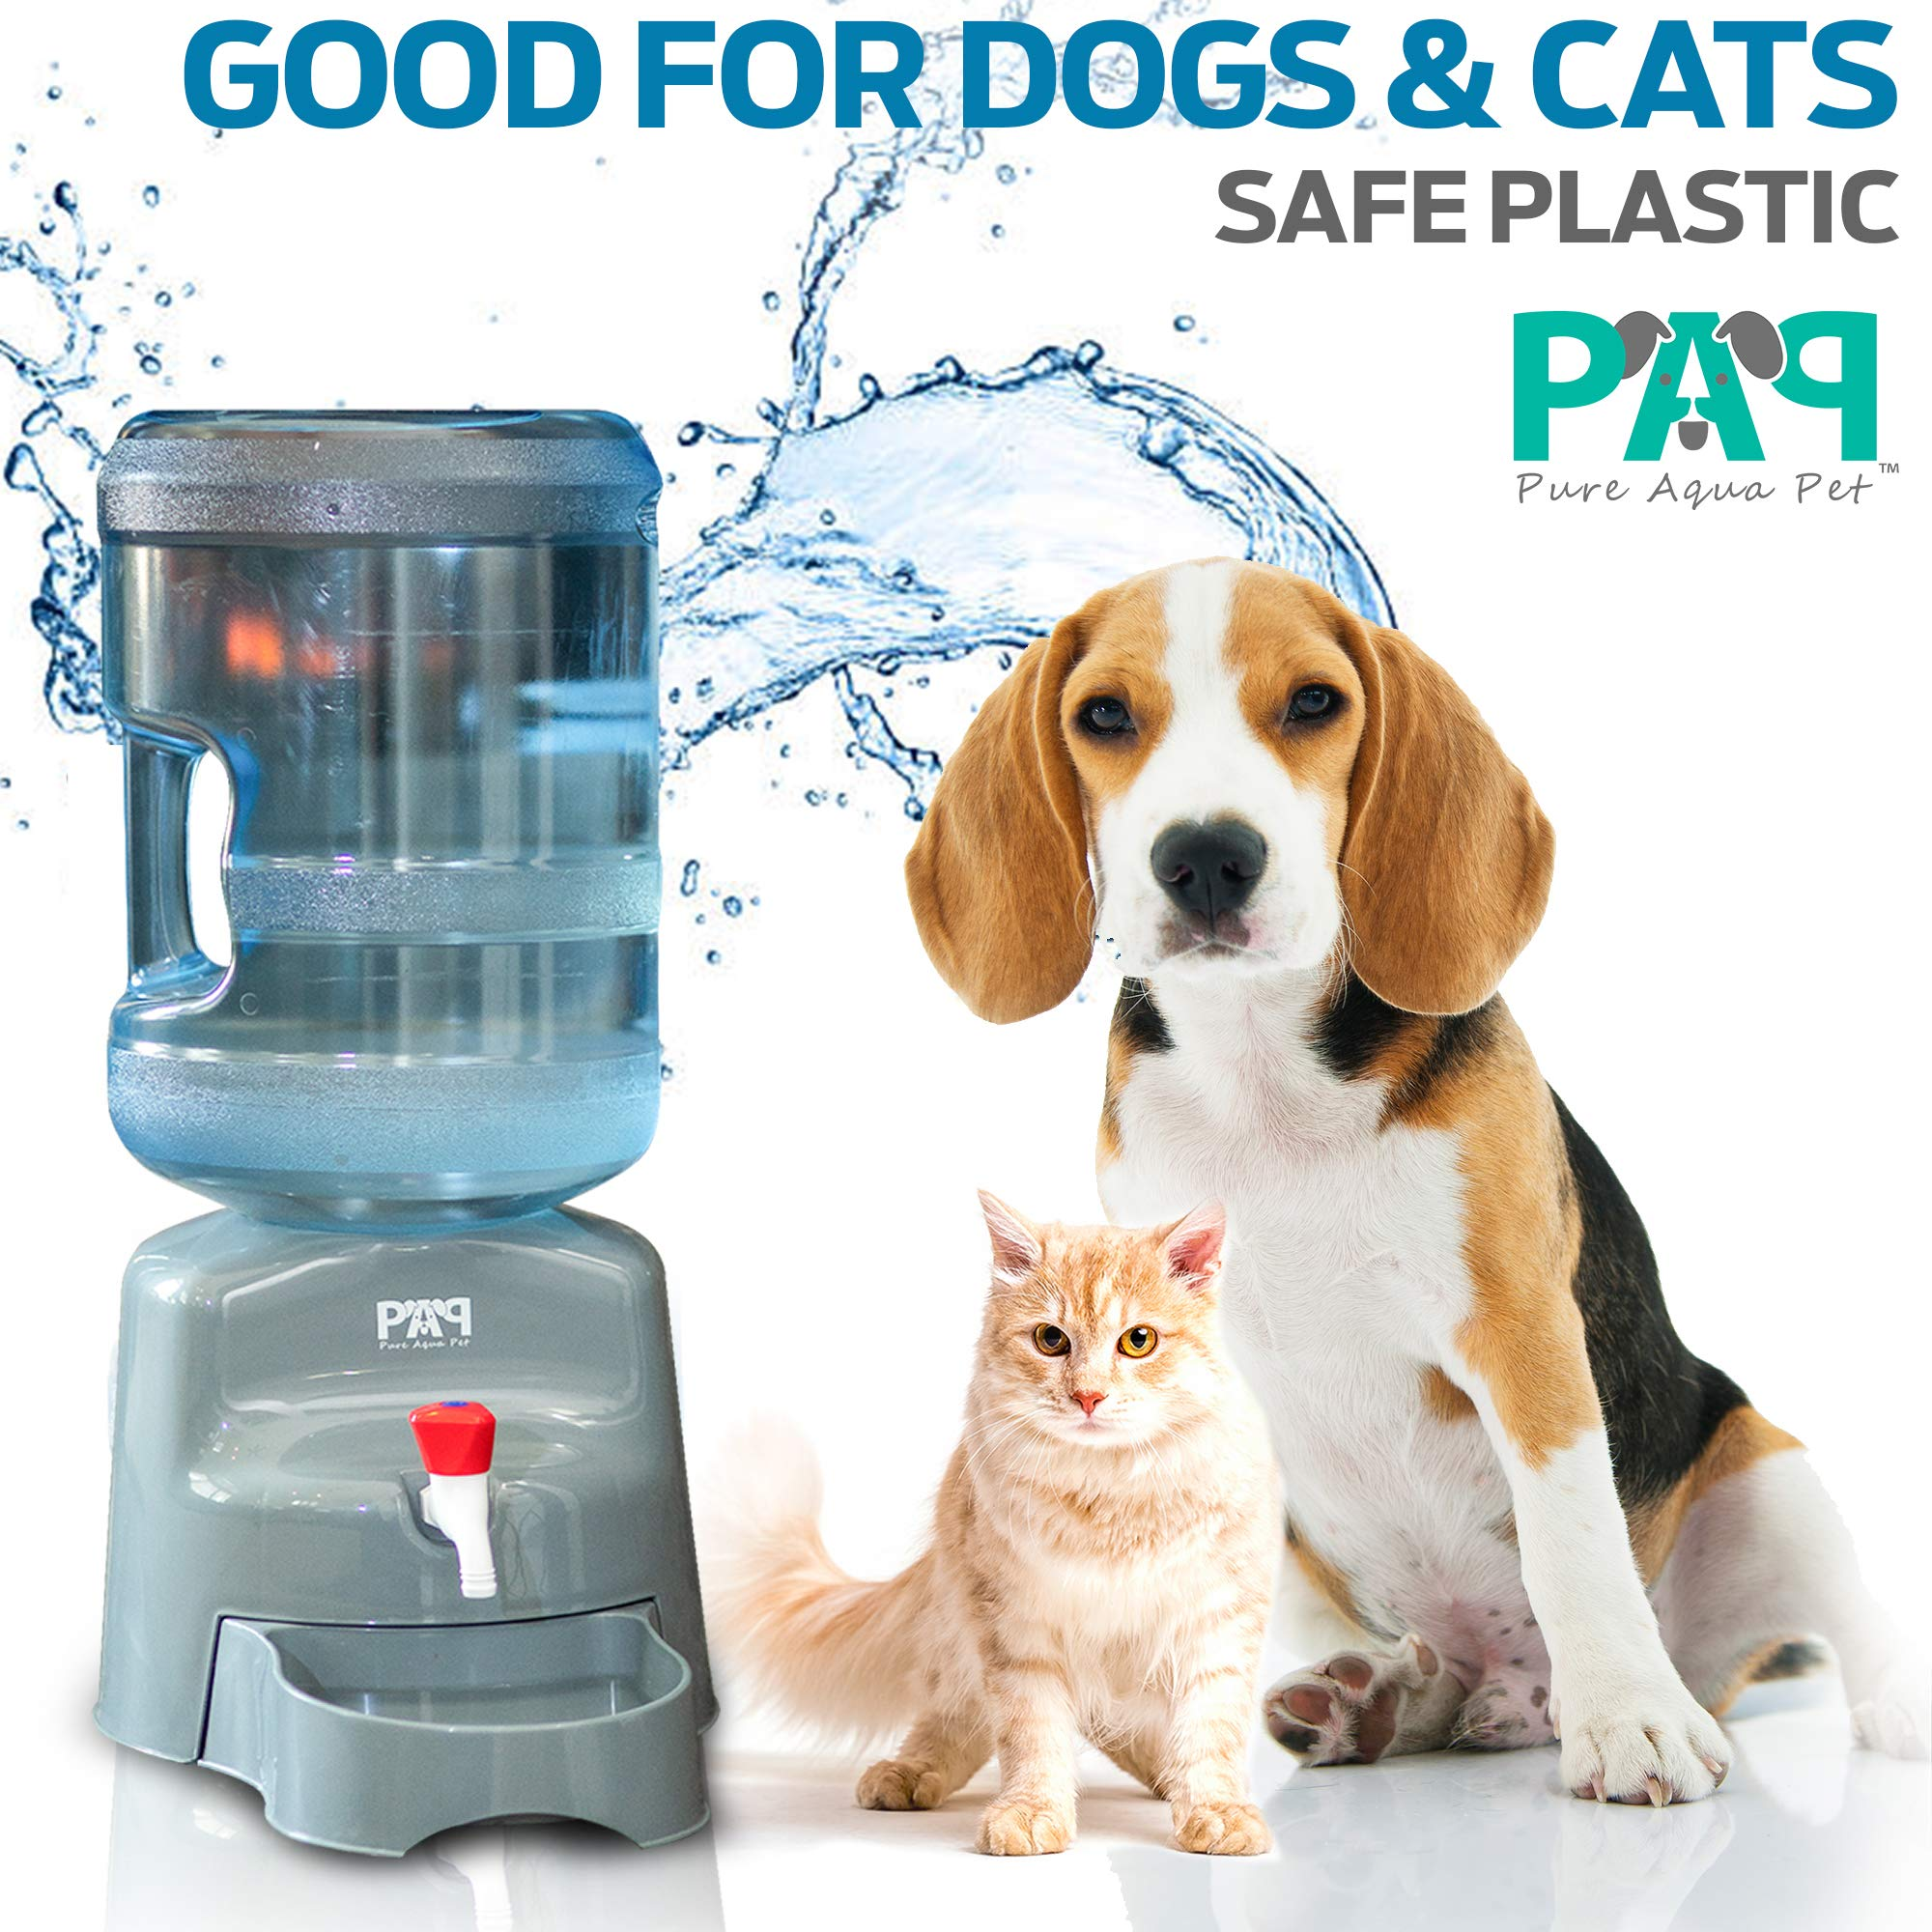 New! Pet Water Dispenser - Fits Any 5 Gallon Water Bottle! - No Filters Required - Easy to Use & Clean - Pet Water Dispenser for Dogs & Cats - Safe Plastic. by PAP